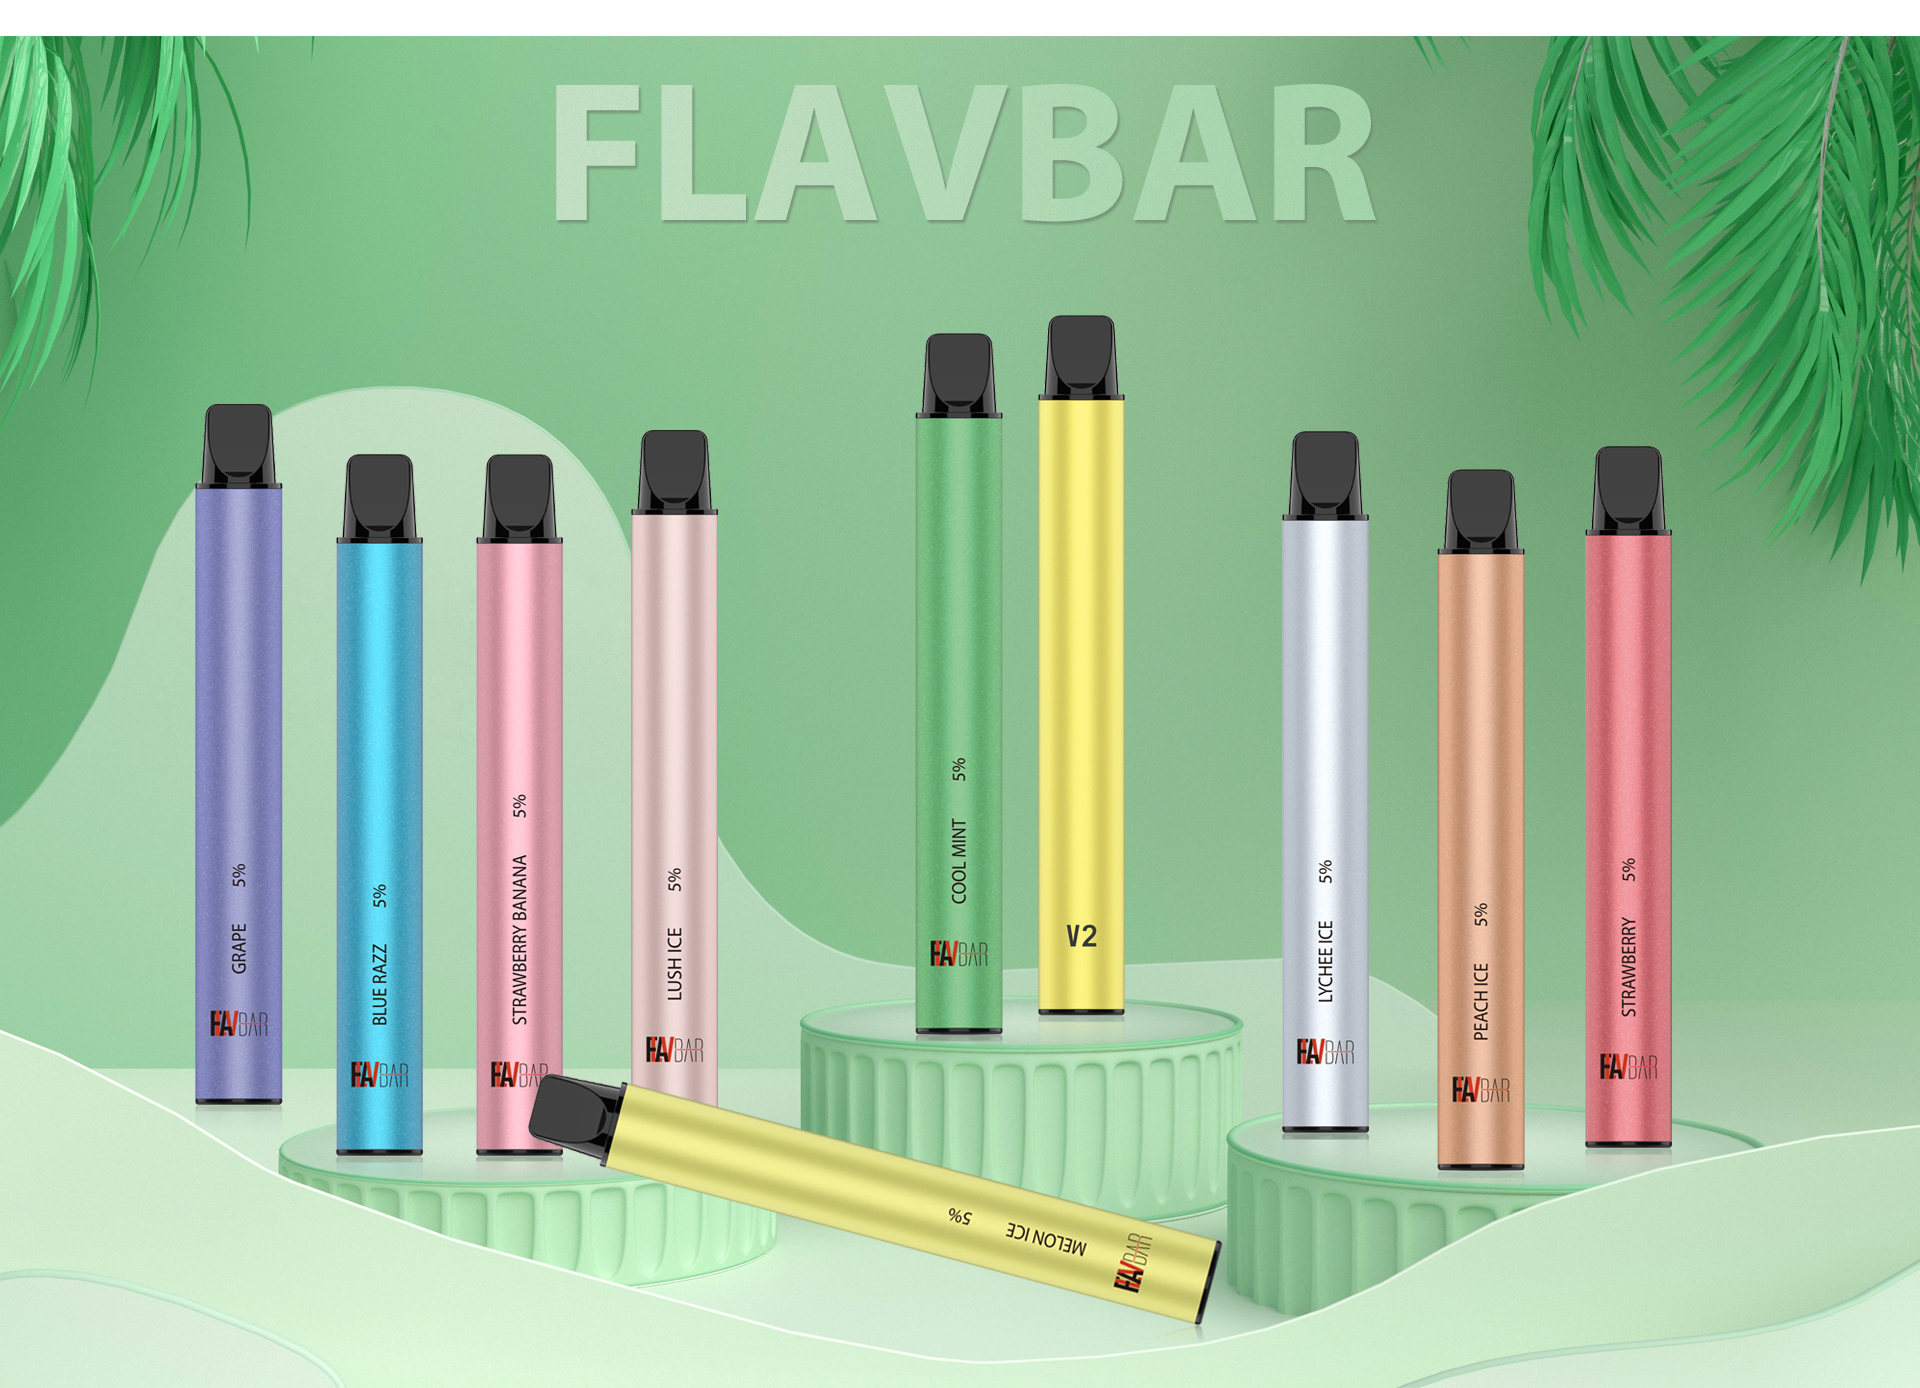 FLAVBAR v2 disposable device is the upgrade from the Flavbar v1.